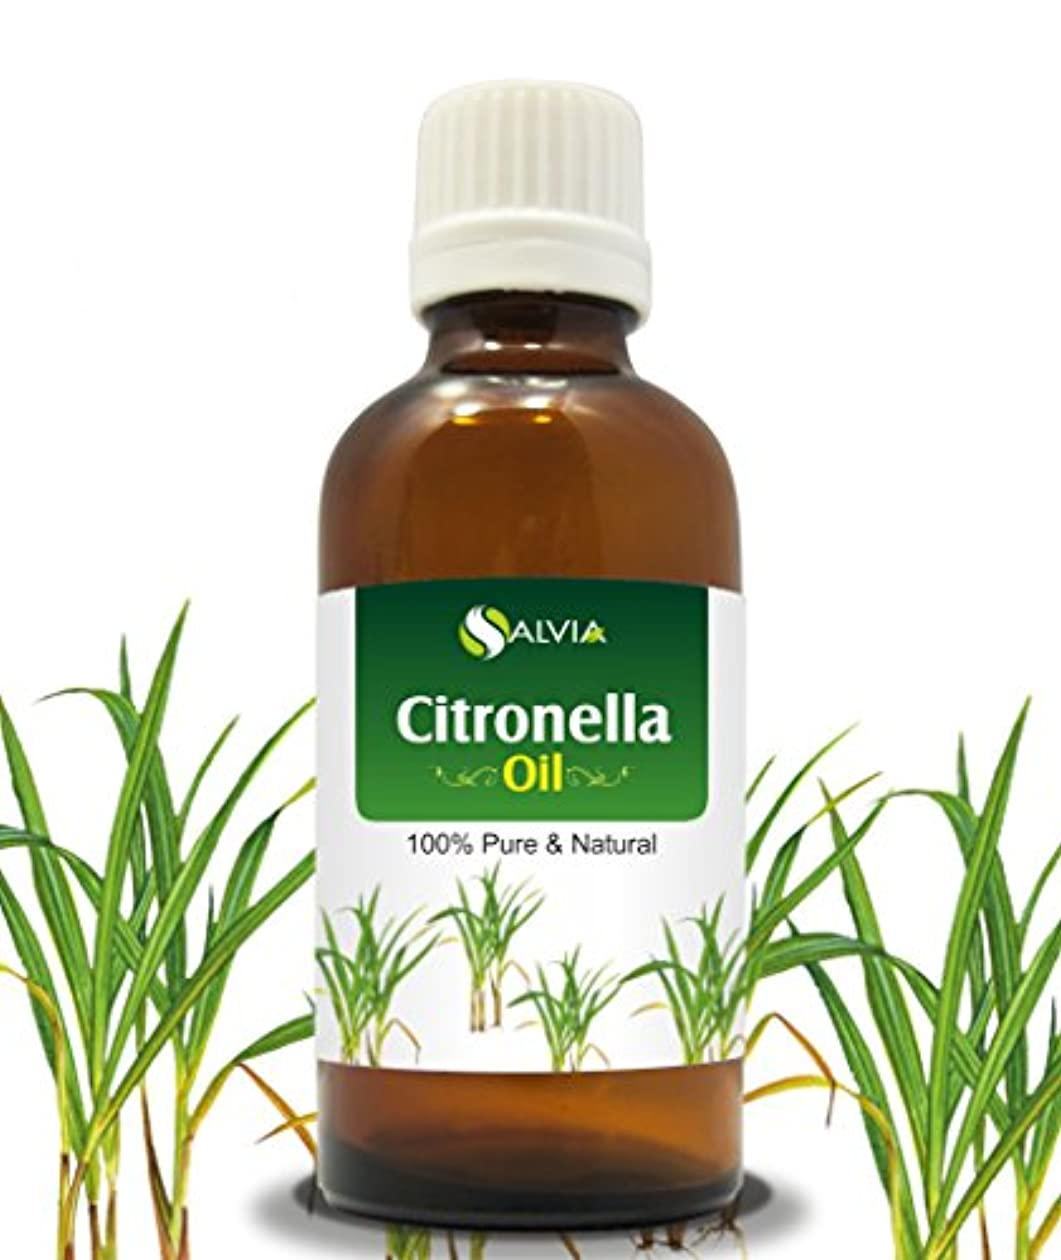 許容できるサーカスポータルCITRONELLA OIL 100% NATURAL PURE UNDILUTED UNCUT ESSENTIAL OIL 30ML